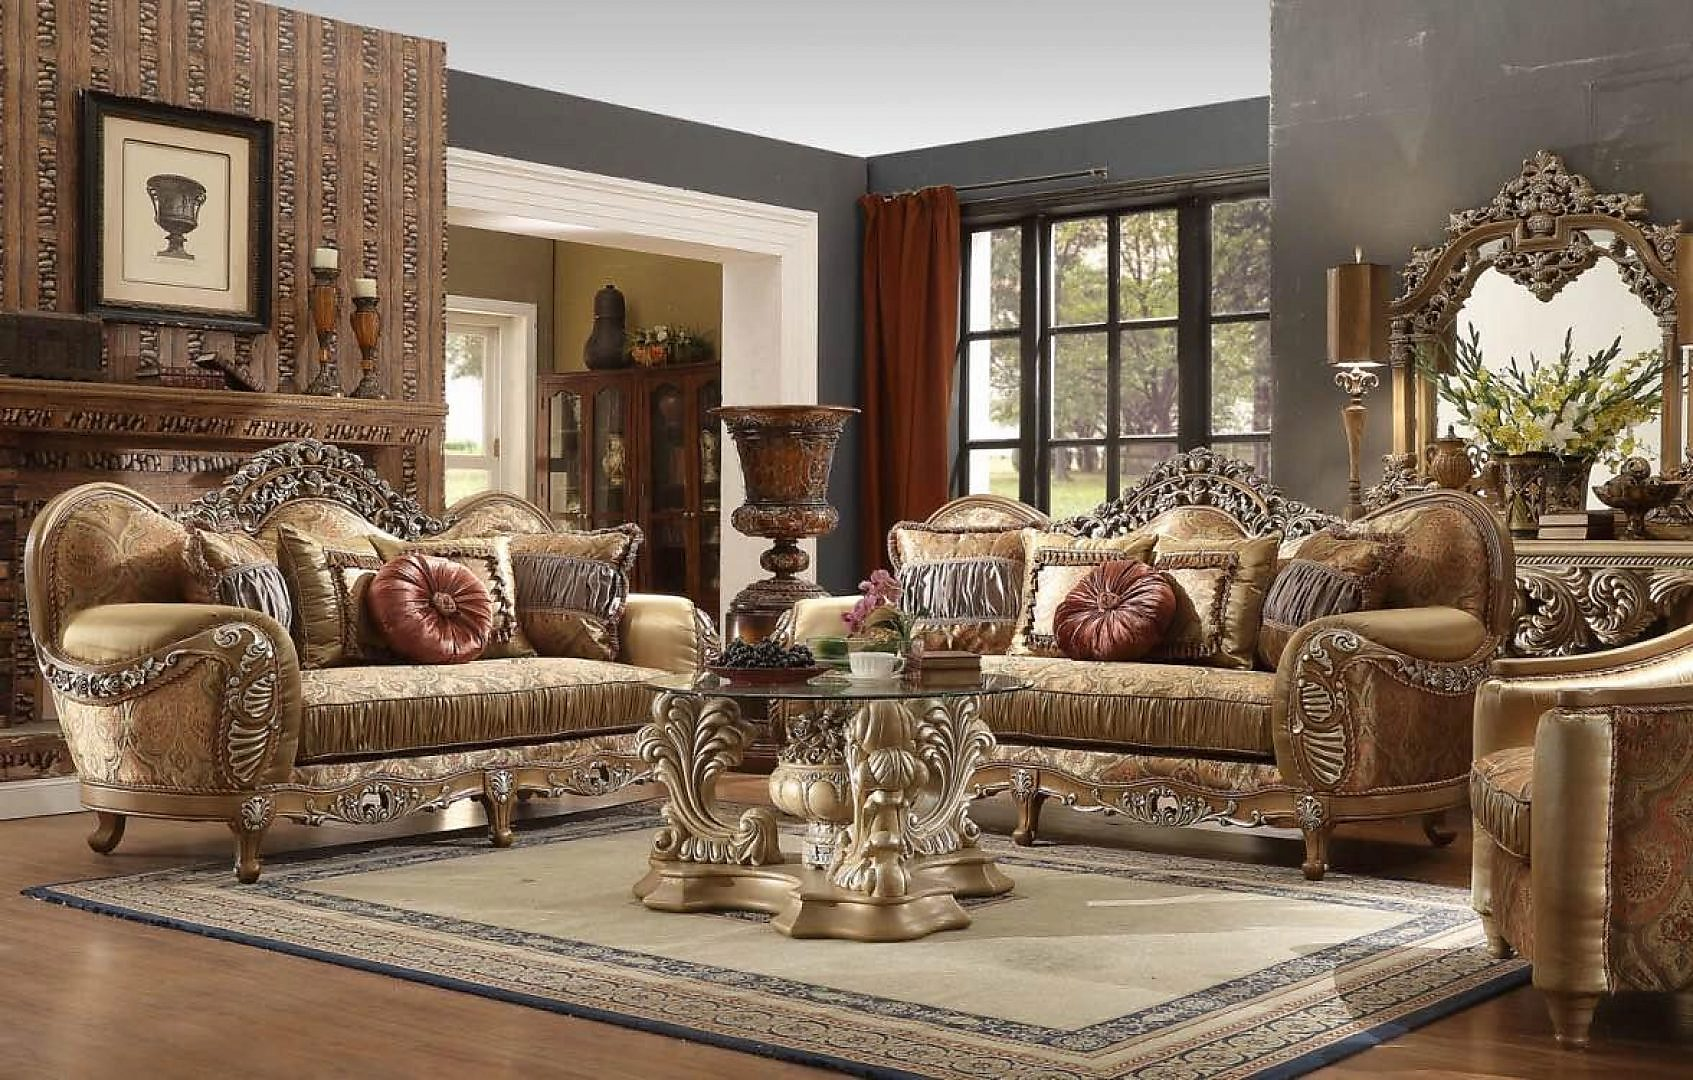 Traditional HD-622 Sofa Love Chair Coffee End Console Tables Mirror 8Pcs by Homey Design